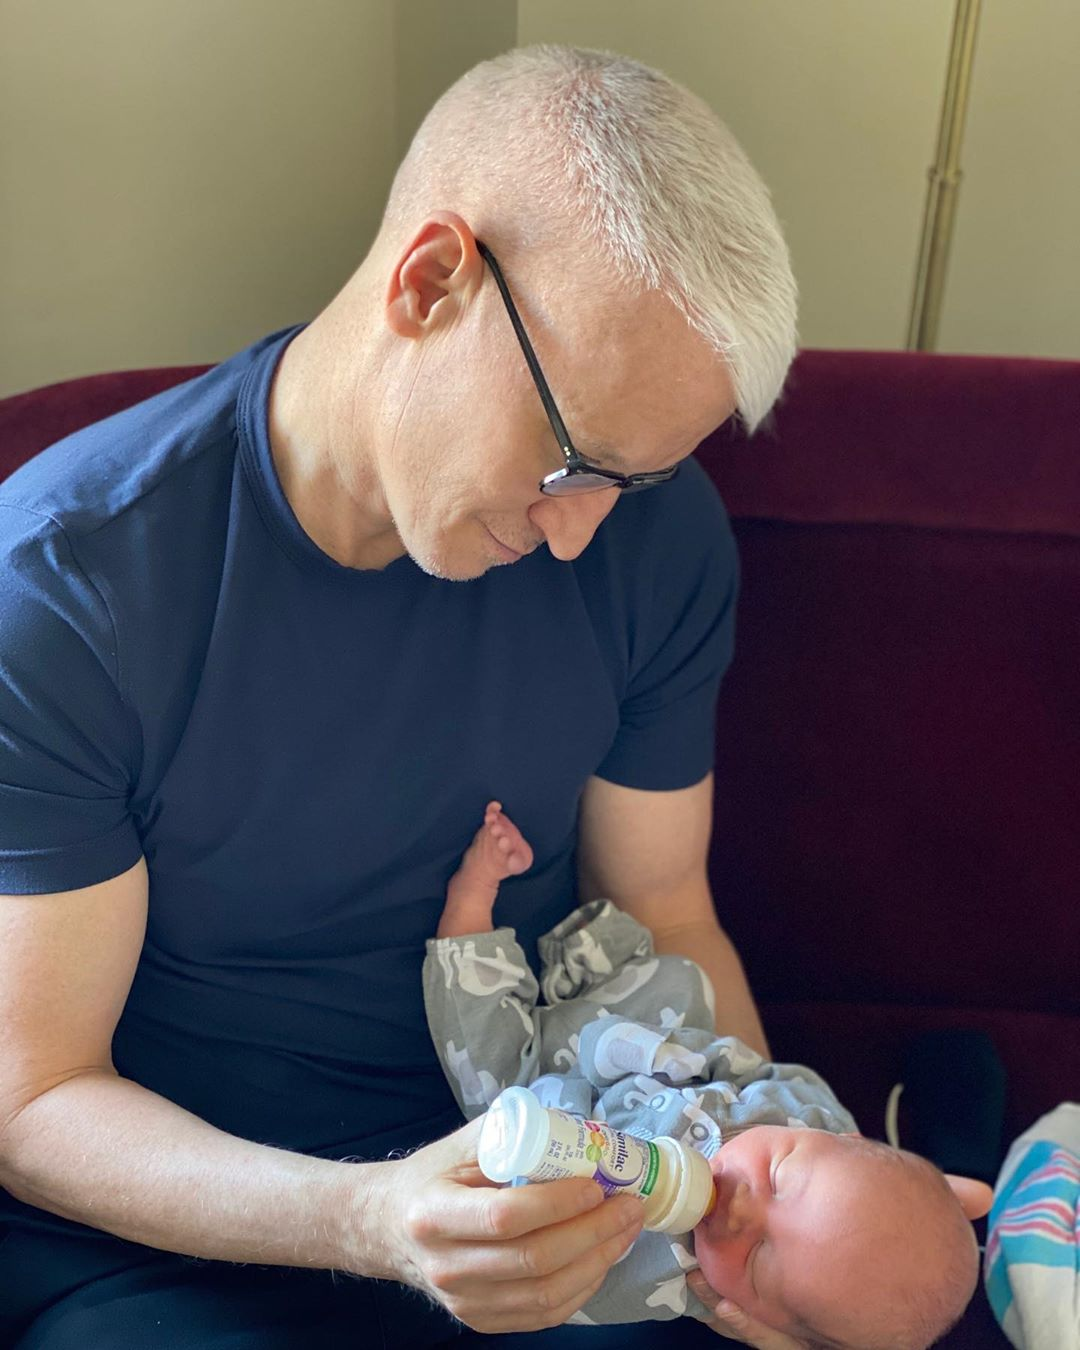 Anderson Cooper with his son, Wyatt